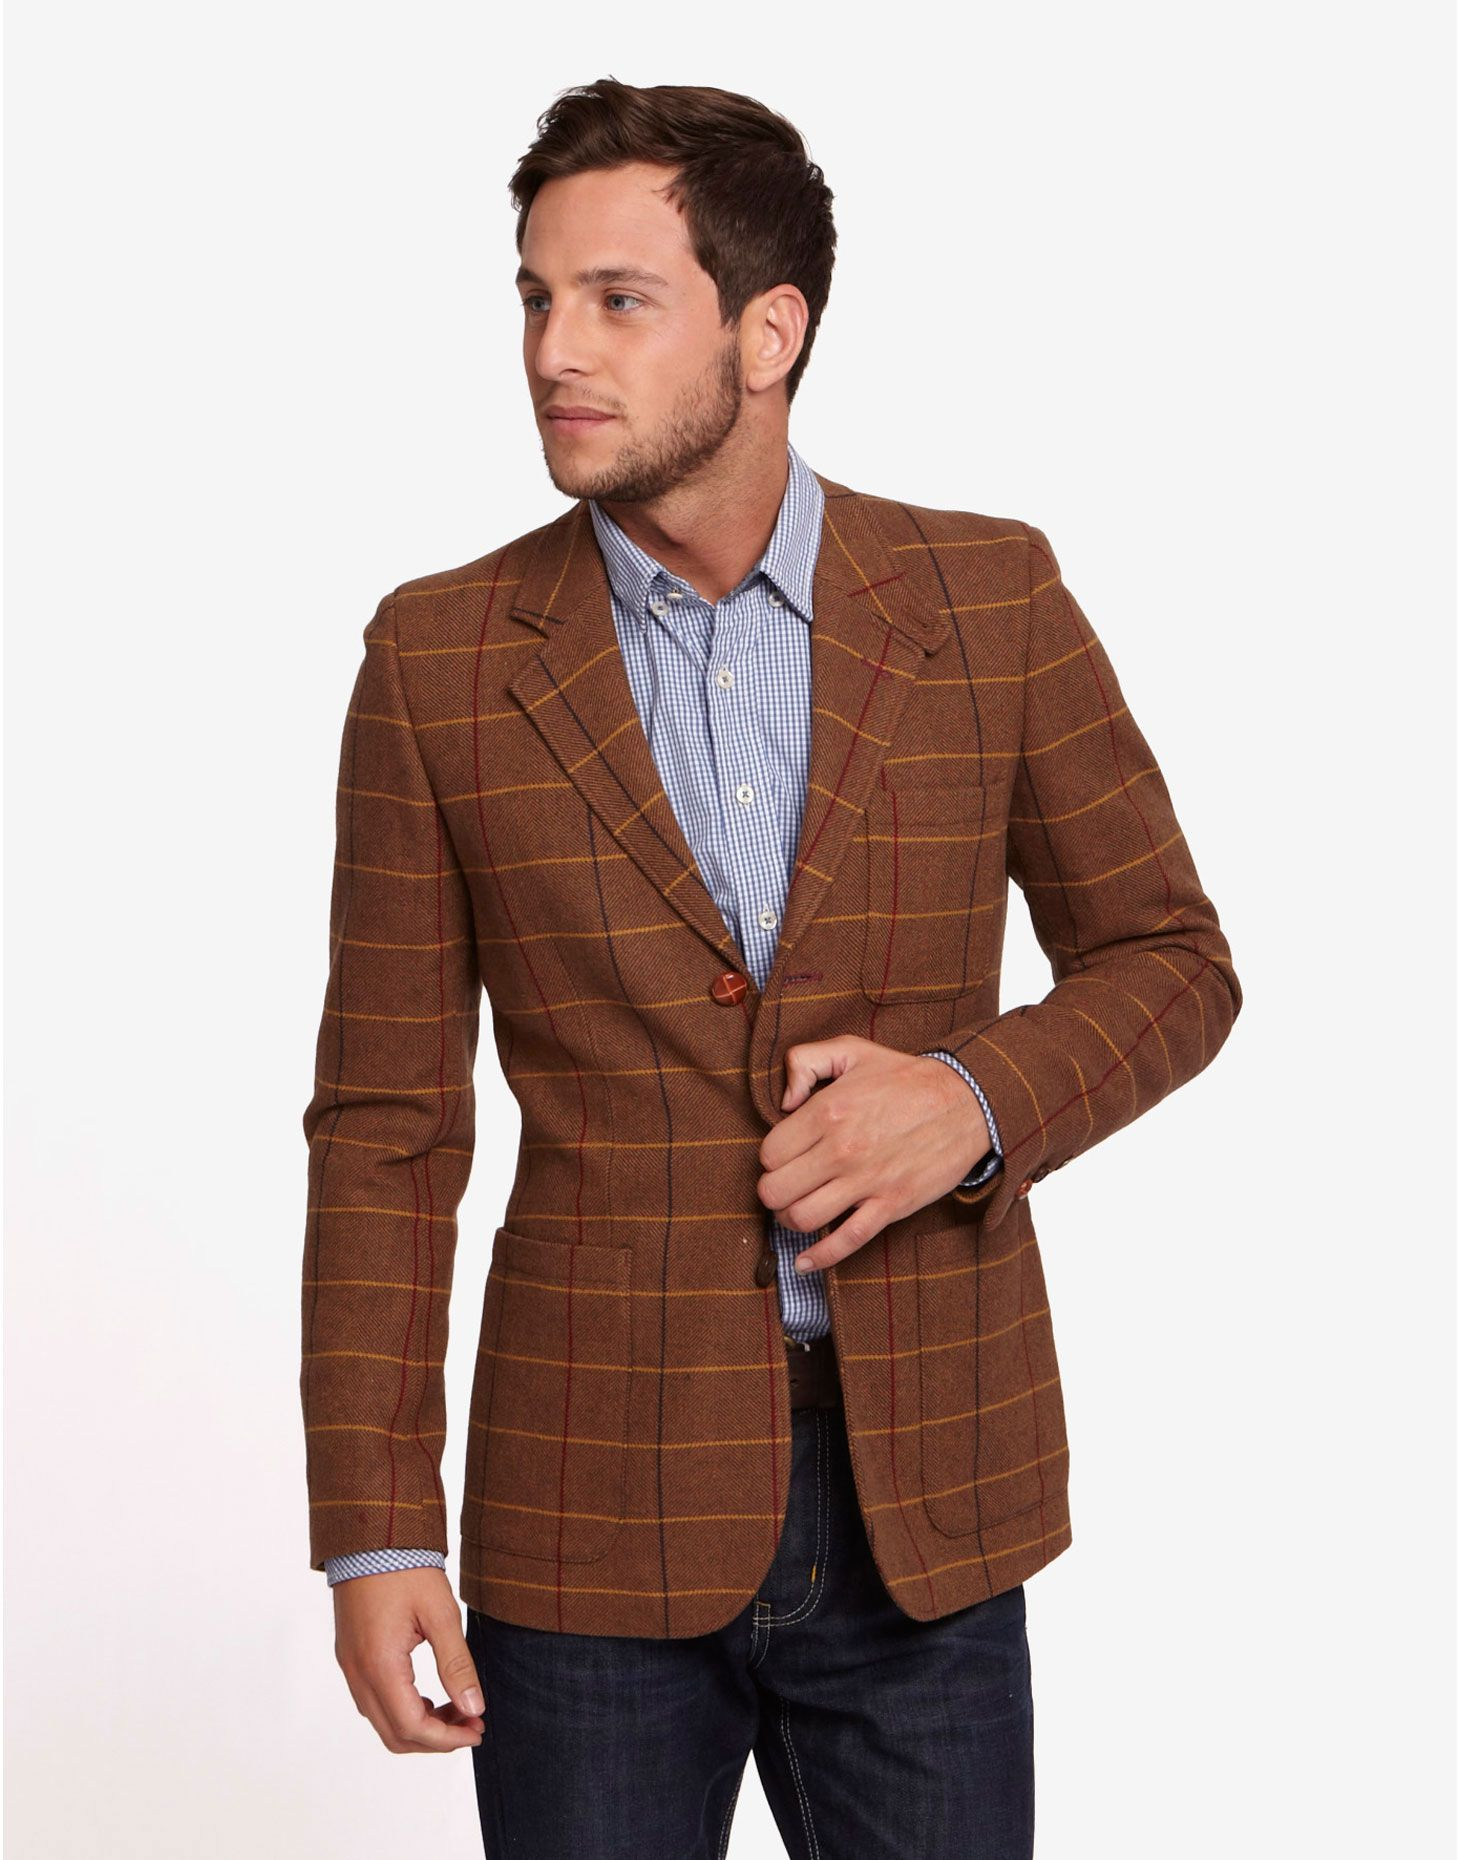 Pockets, high quality wool blend tweed fabric, suitable for casual Men's Blazer Shop Best Sellers · Deals of the Day · Fast Shipping · Read Ratings & Reviews.